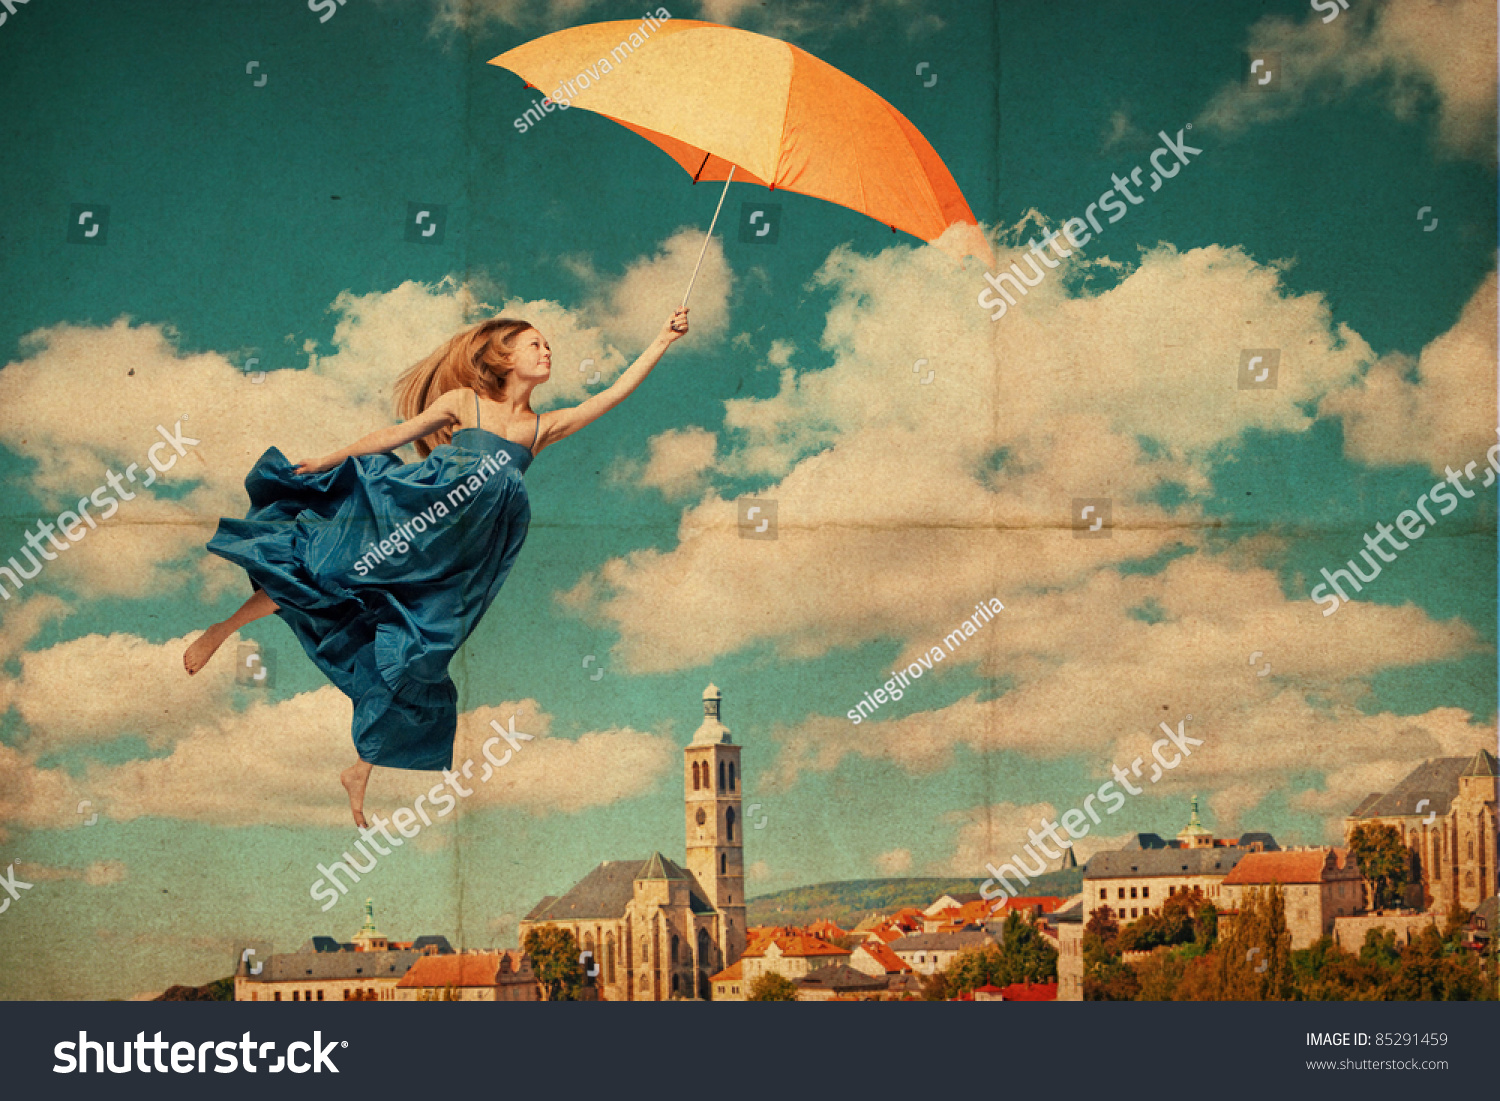 Art Collage With Flying Woman, Vintage Image Stock Photo ...